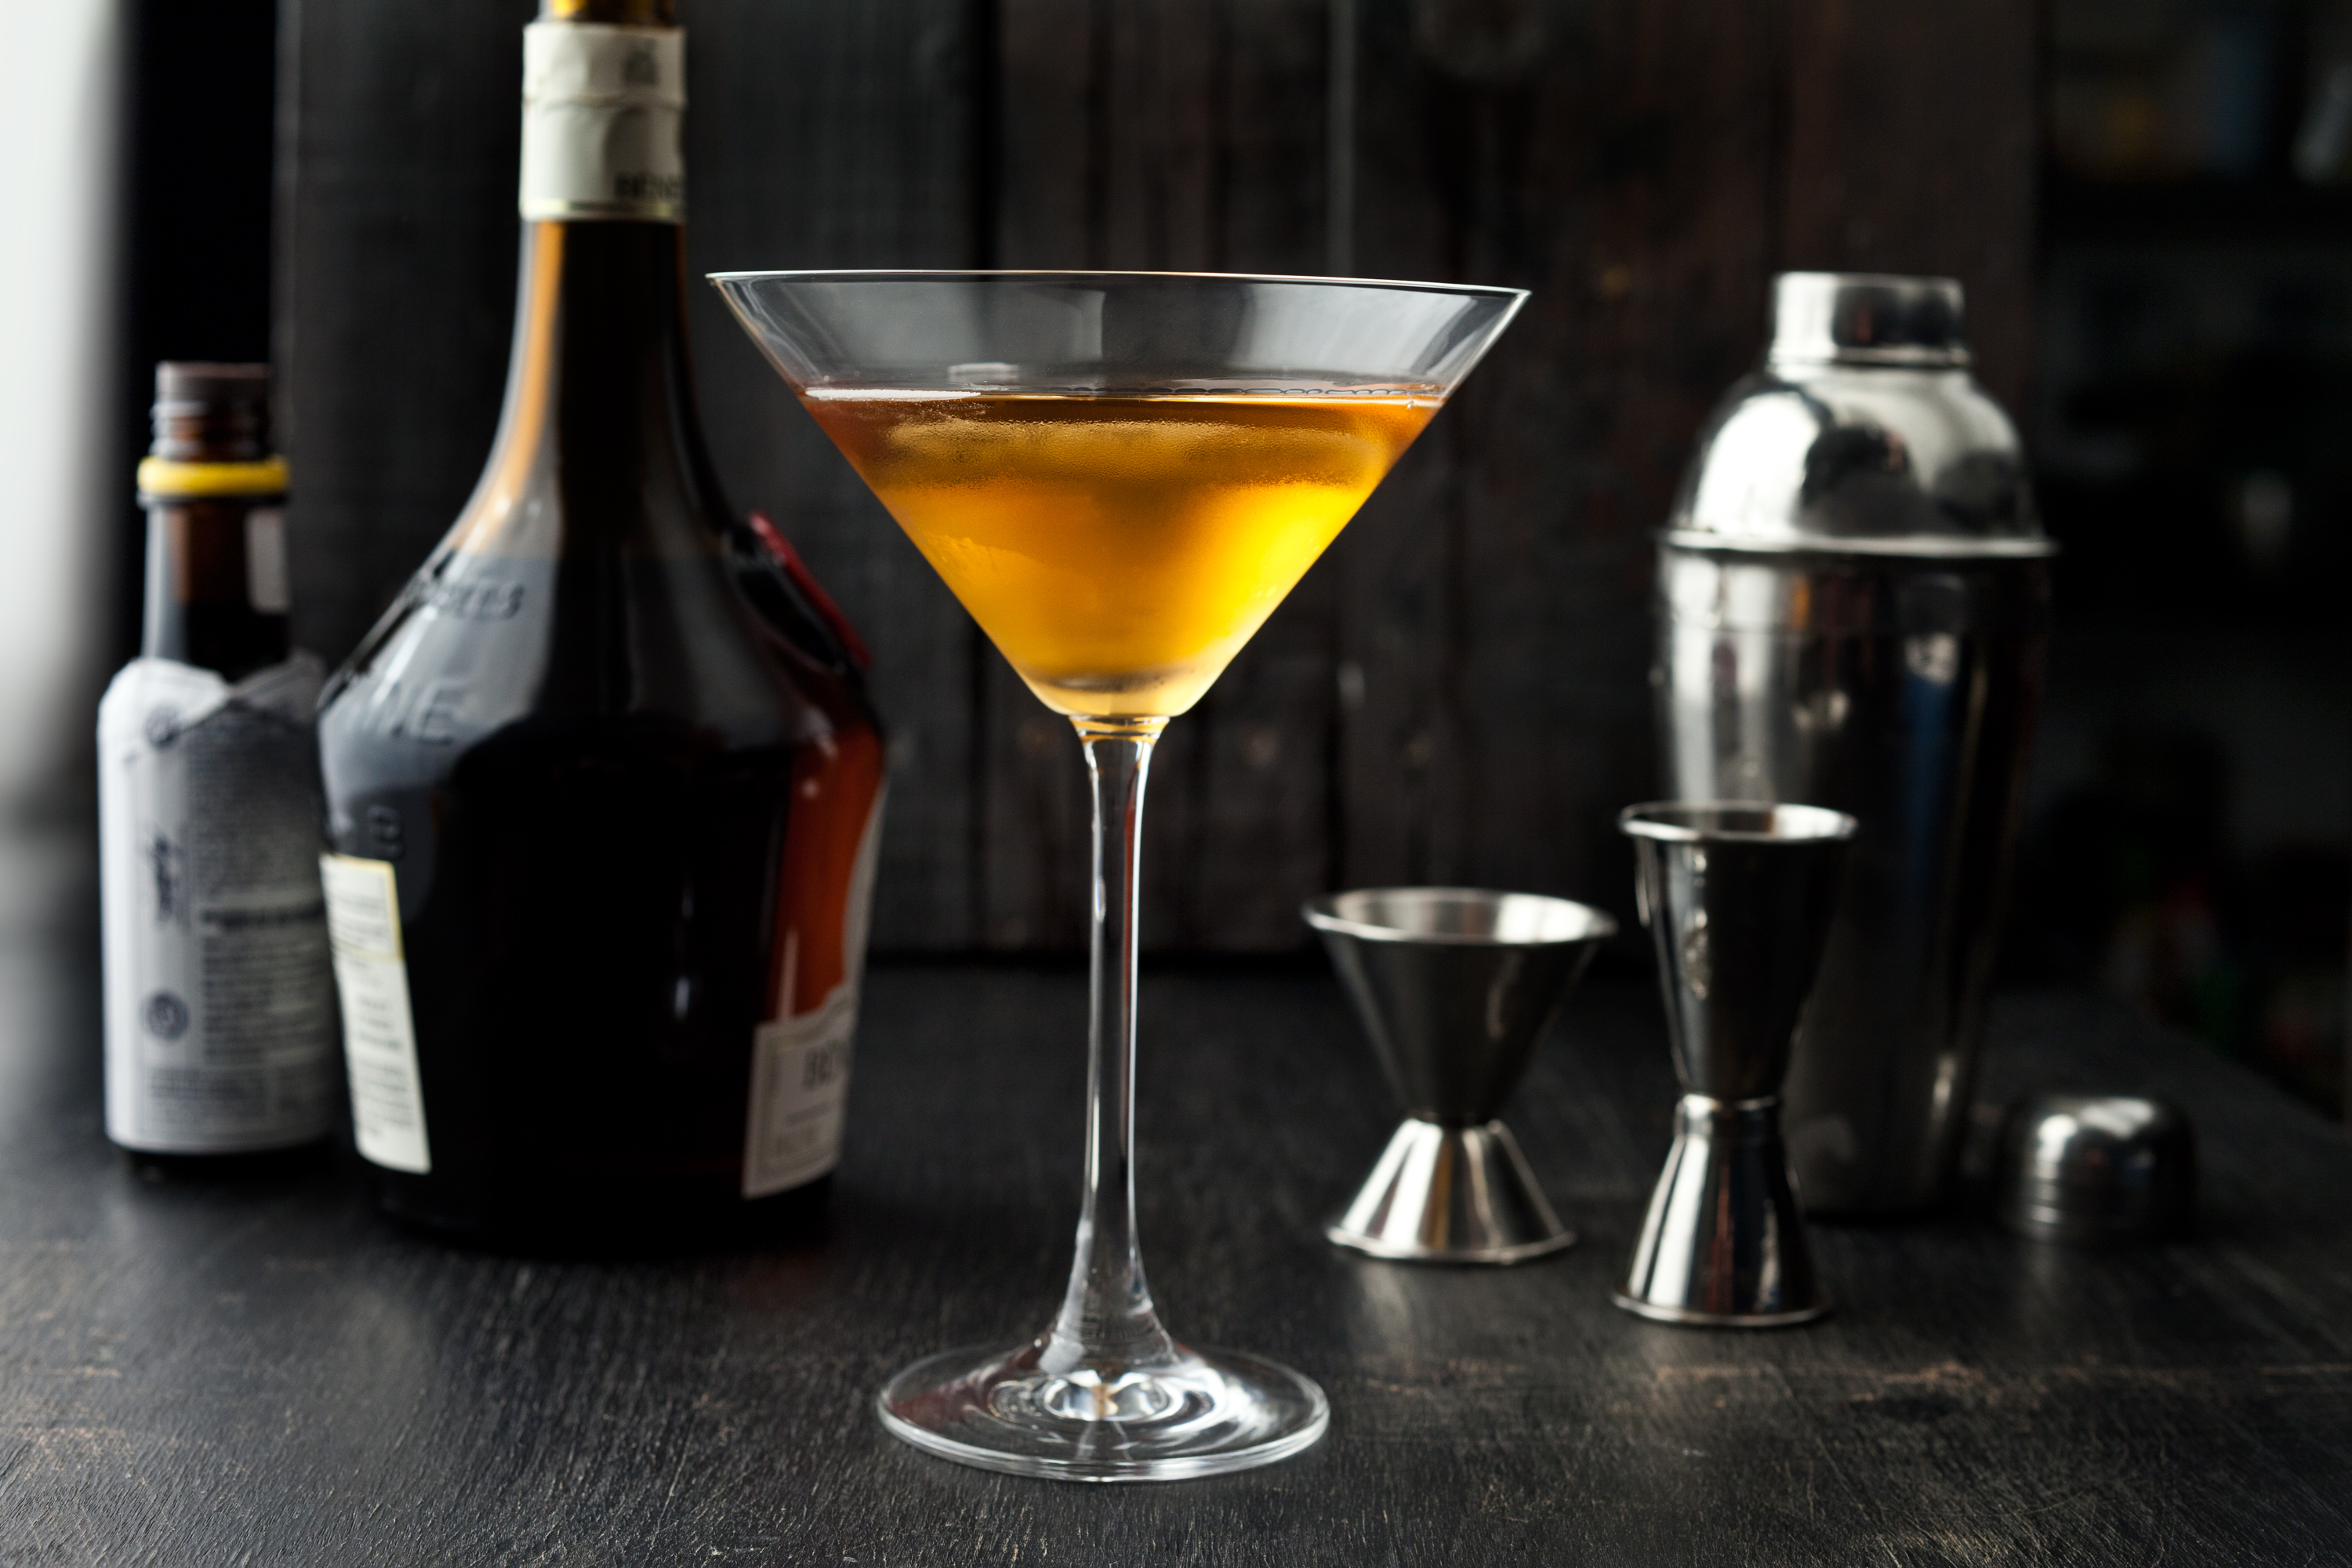 cocktail-frisco-bebidas-alcoolicas